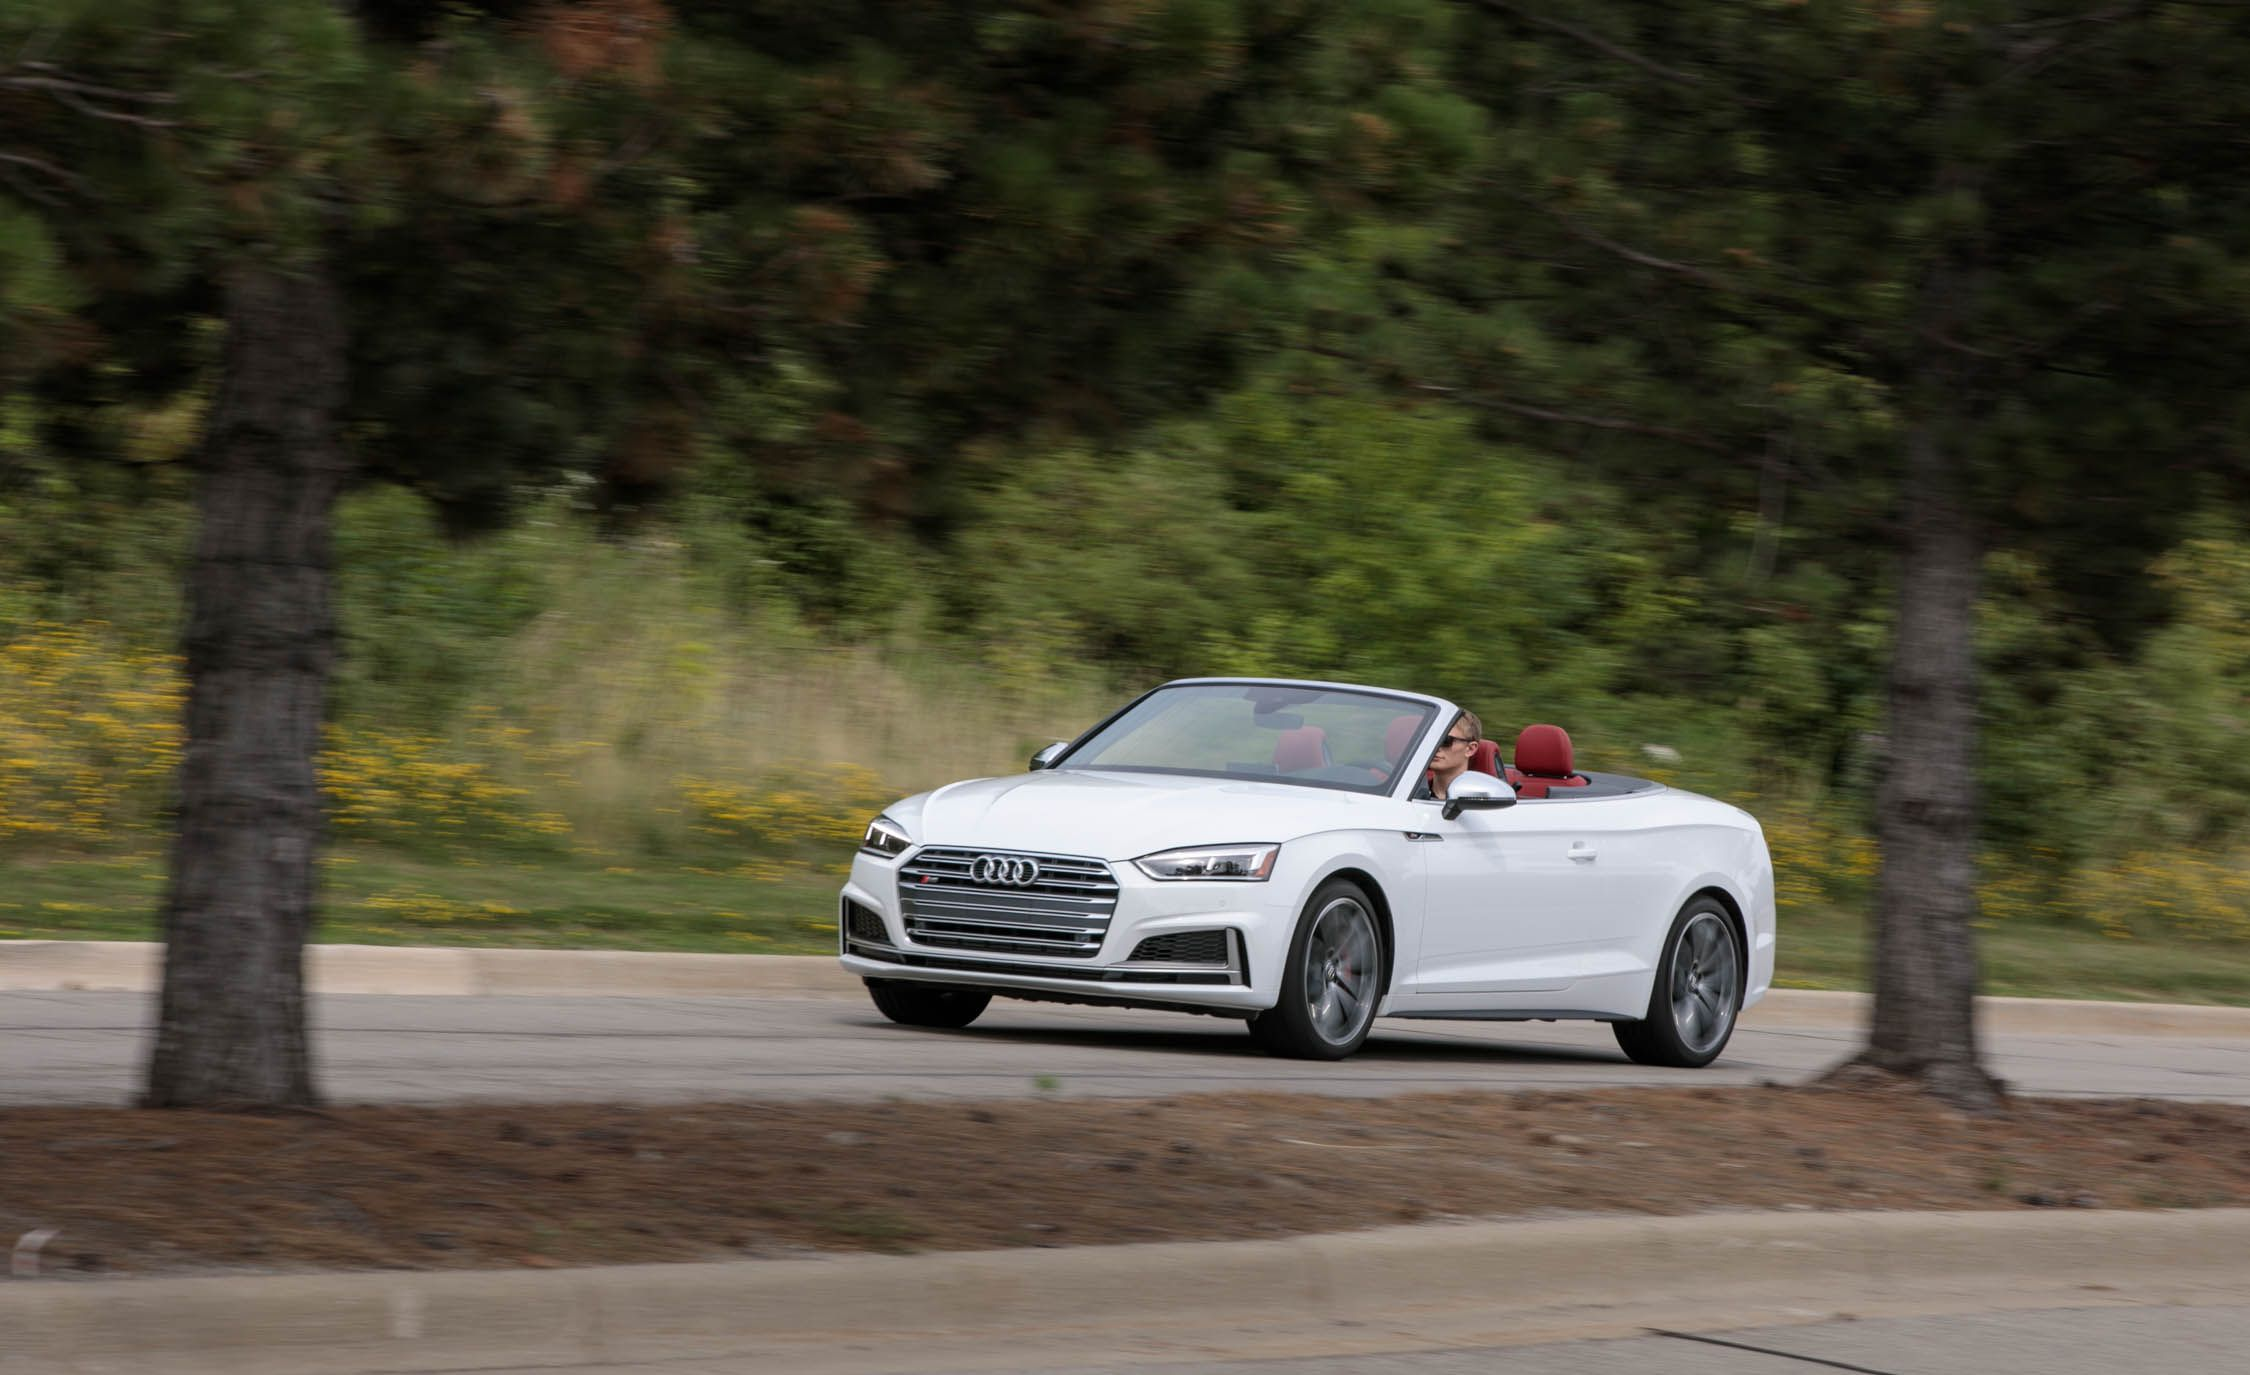 Audi S5 Reviews Audi S5 Price s and Specs